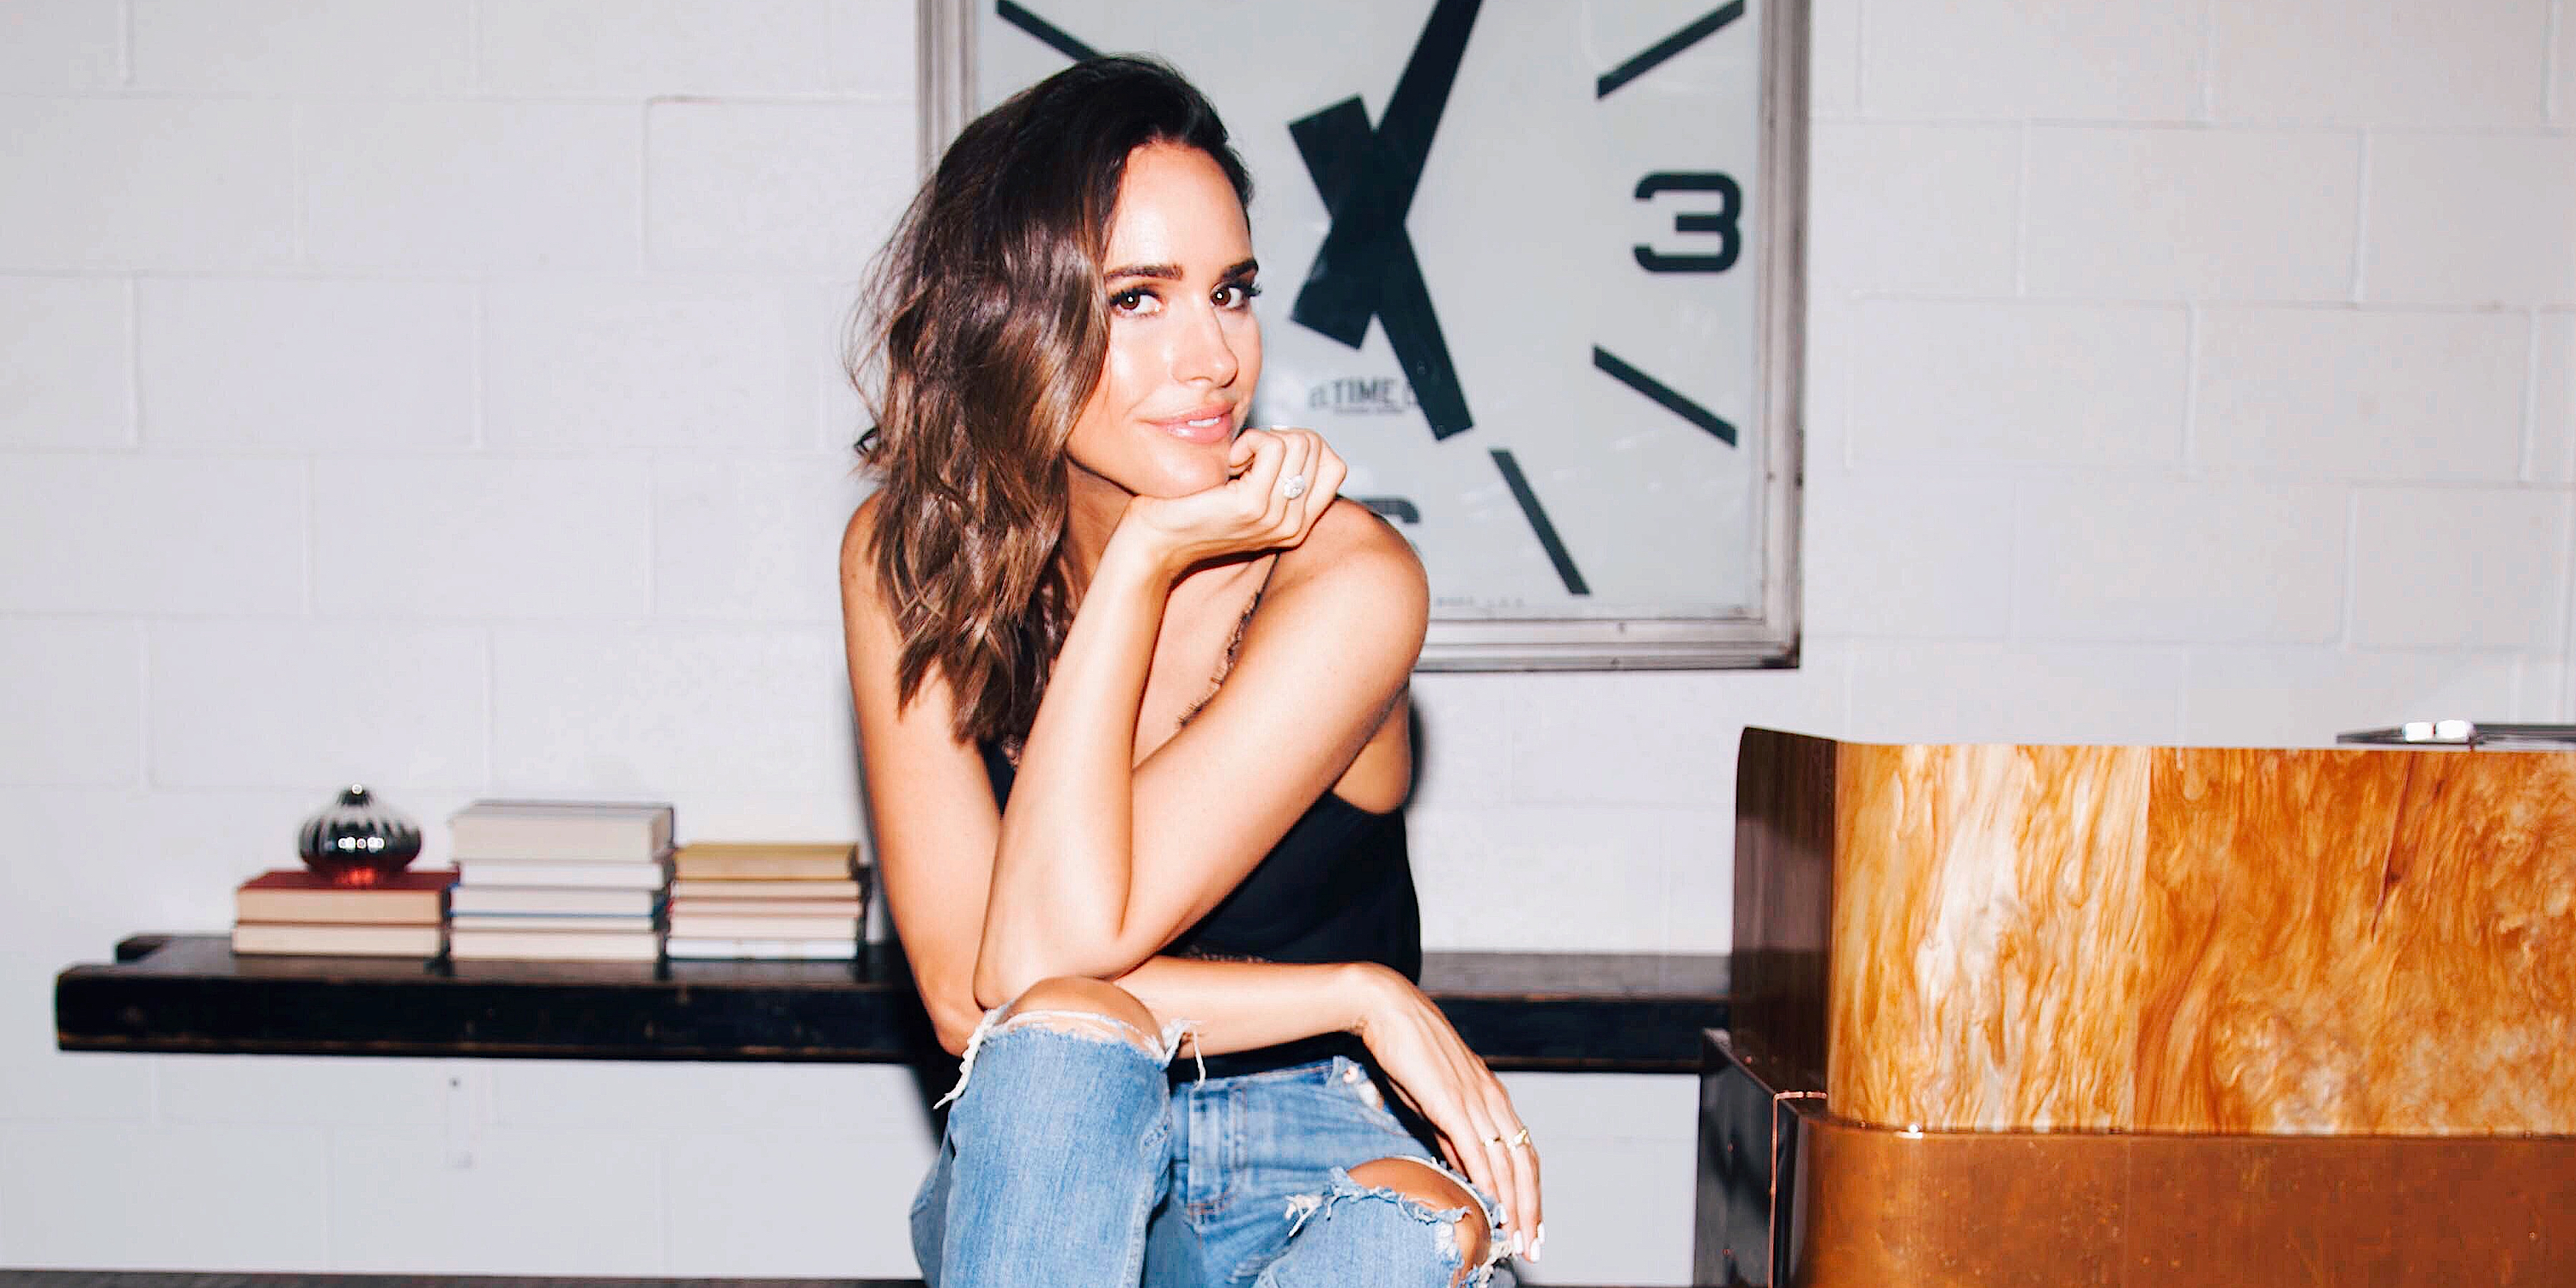 plain jane fashion tips with Louise Roe on 5946 moreover Louise Roe besides Best friends and bras shirt 235258925658257502 further Best friends till old and gray shirt 235269289914305900 furthermore 10.